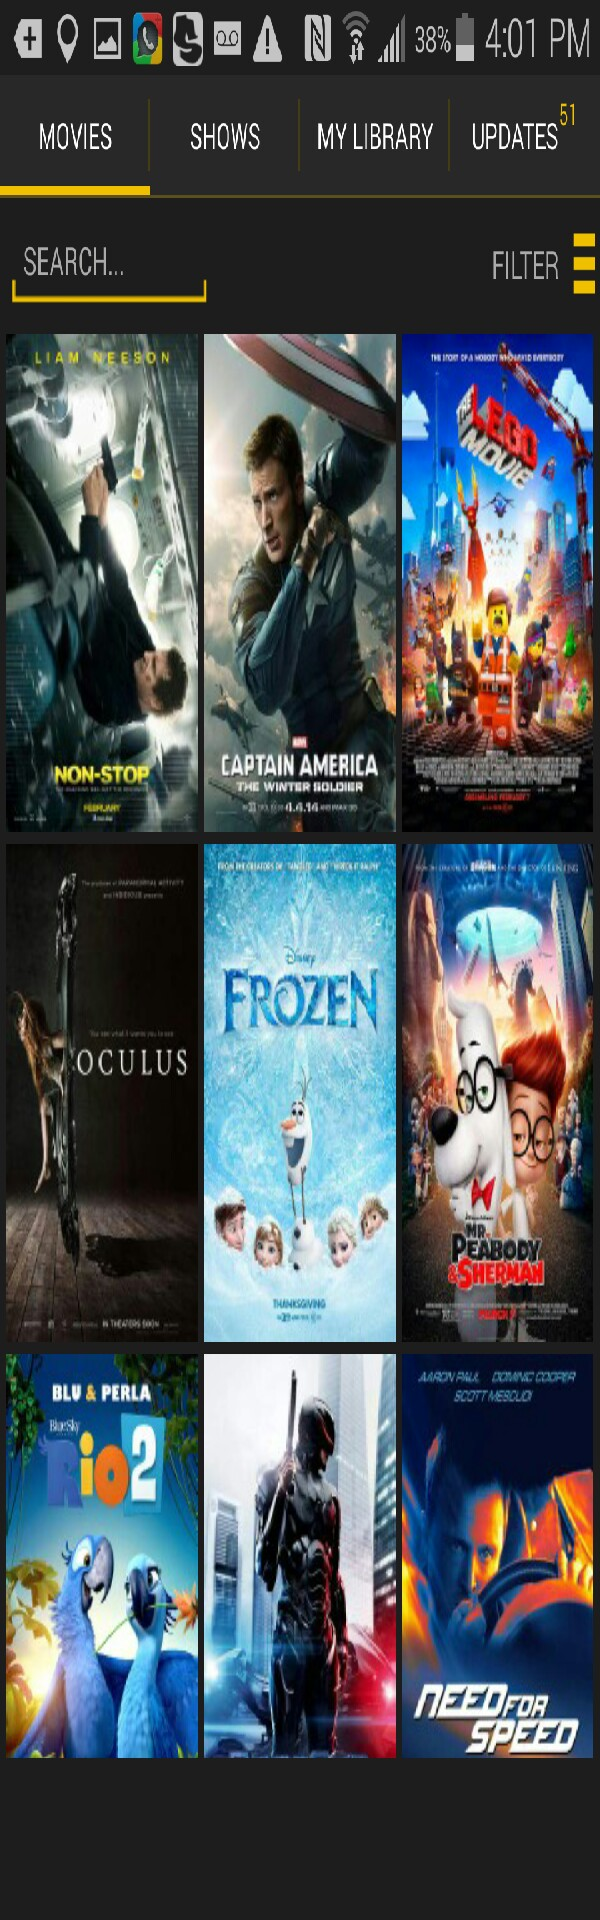 after downloading, select a movie you like